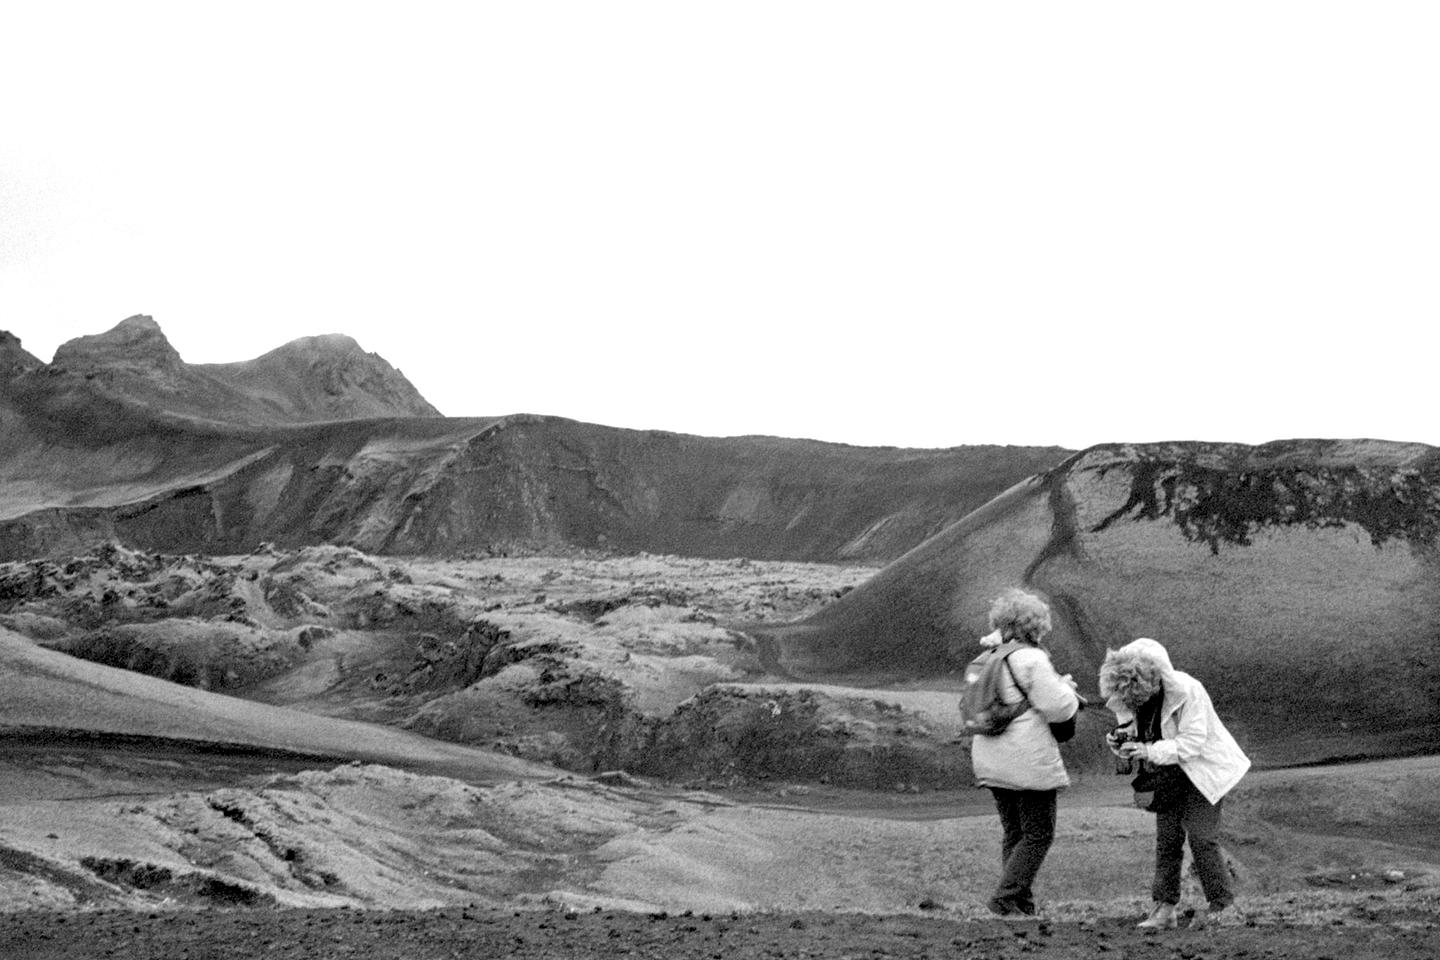 Twinning at Landmannalaugar, Iceland 2019   Edition 1 of 2